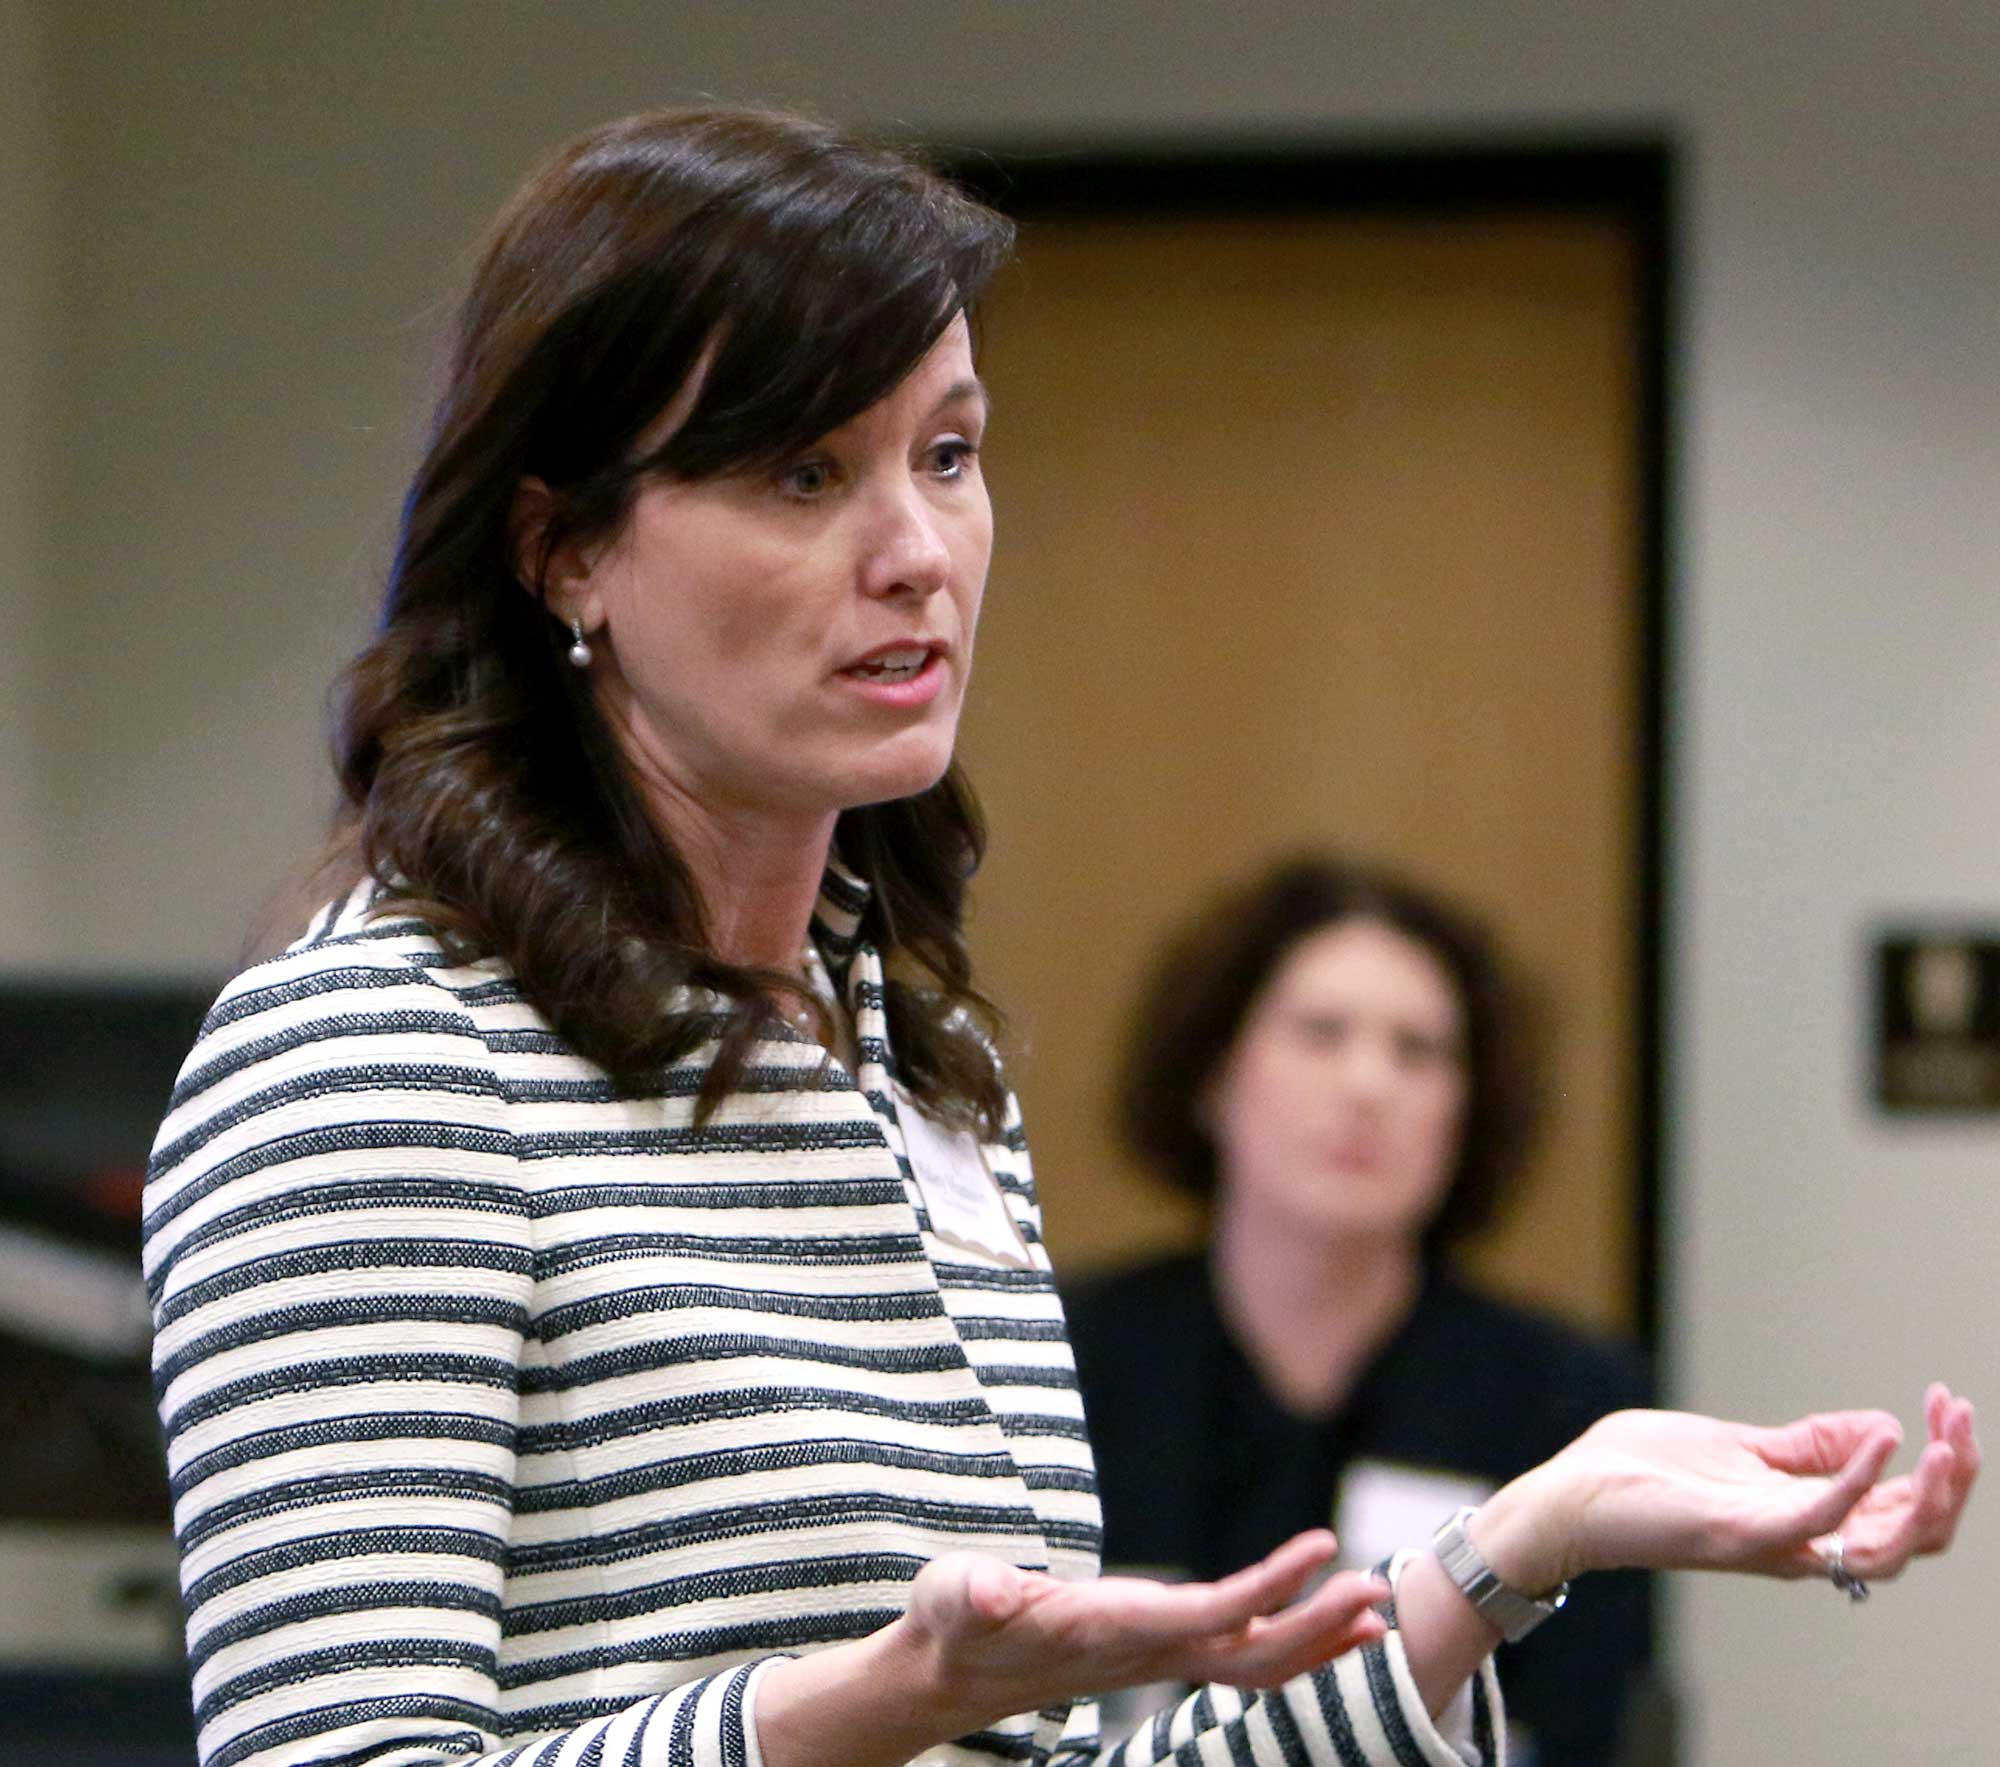 Haley Hanson, a partner at Husch Blackwell, speaks at a recent gathering of Title IX professionals at Lindenwood.